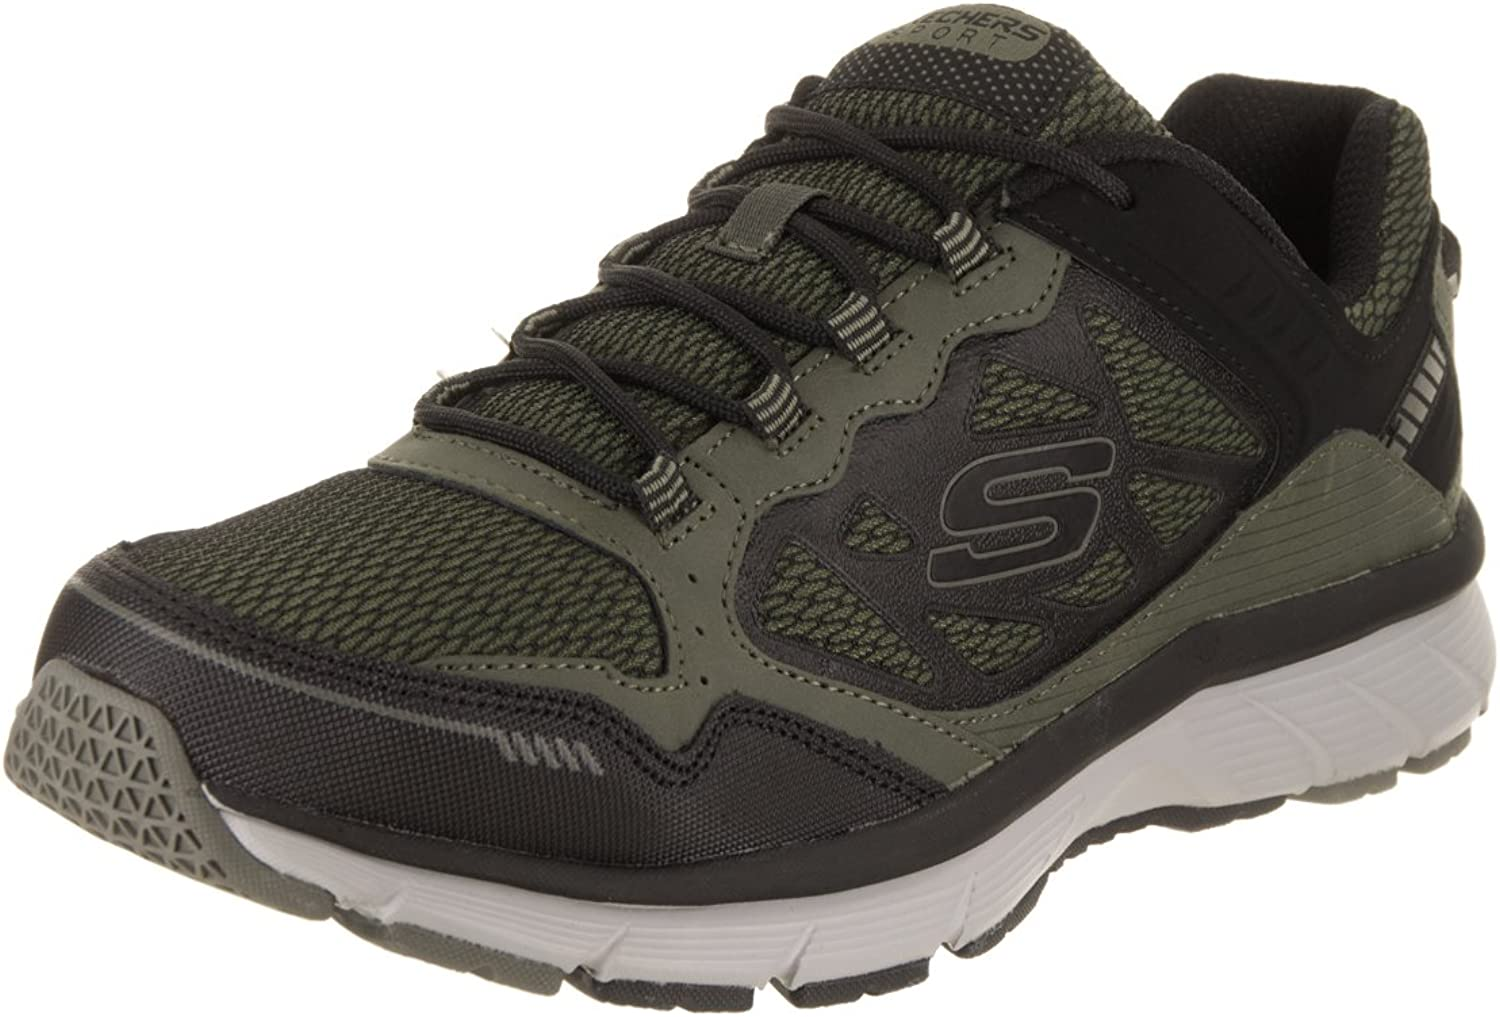 Skechers Mens Bowerz Trainers in Black- Lace Fastening- Padded Collar and